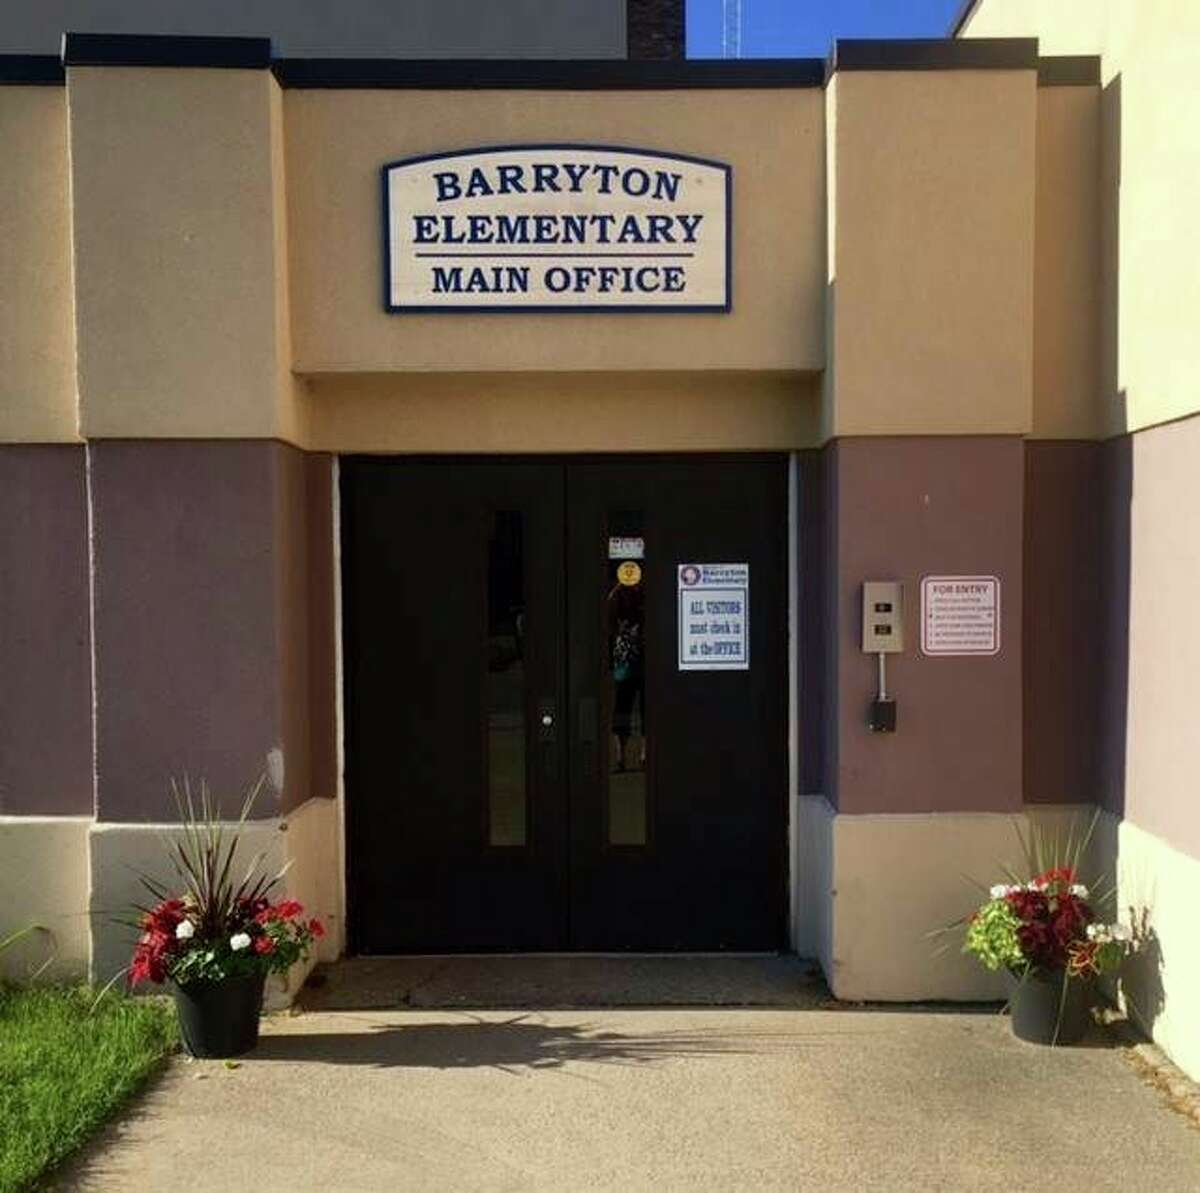 Barryton Elementary School will be closed for two weeks, following several positive COVID-19 tests at the building. The school will reopen Nov. 12. (Courtesy photo)